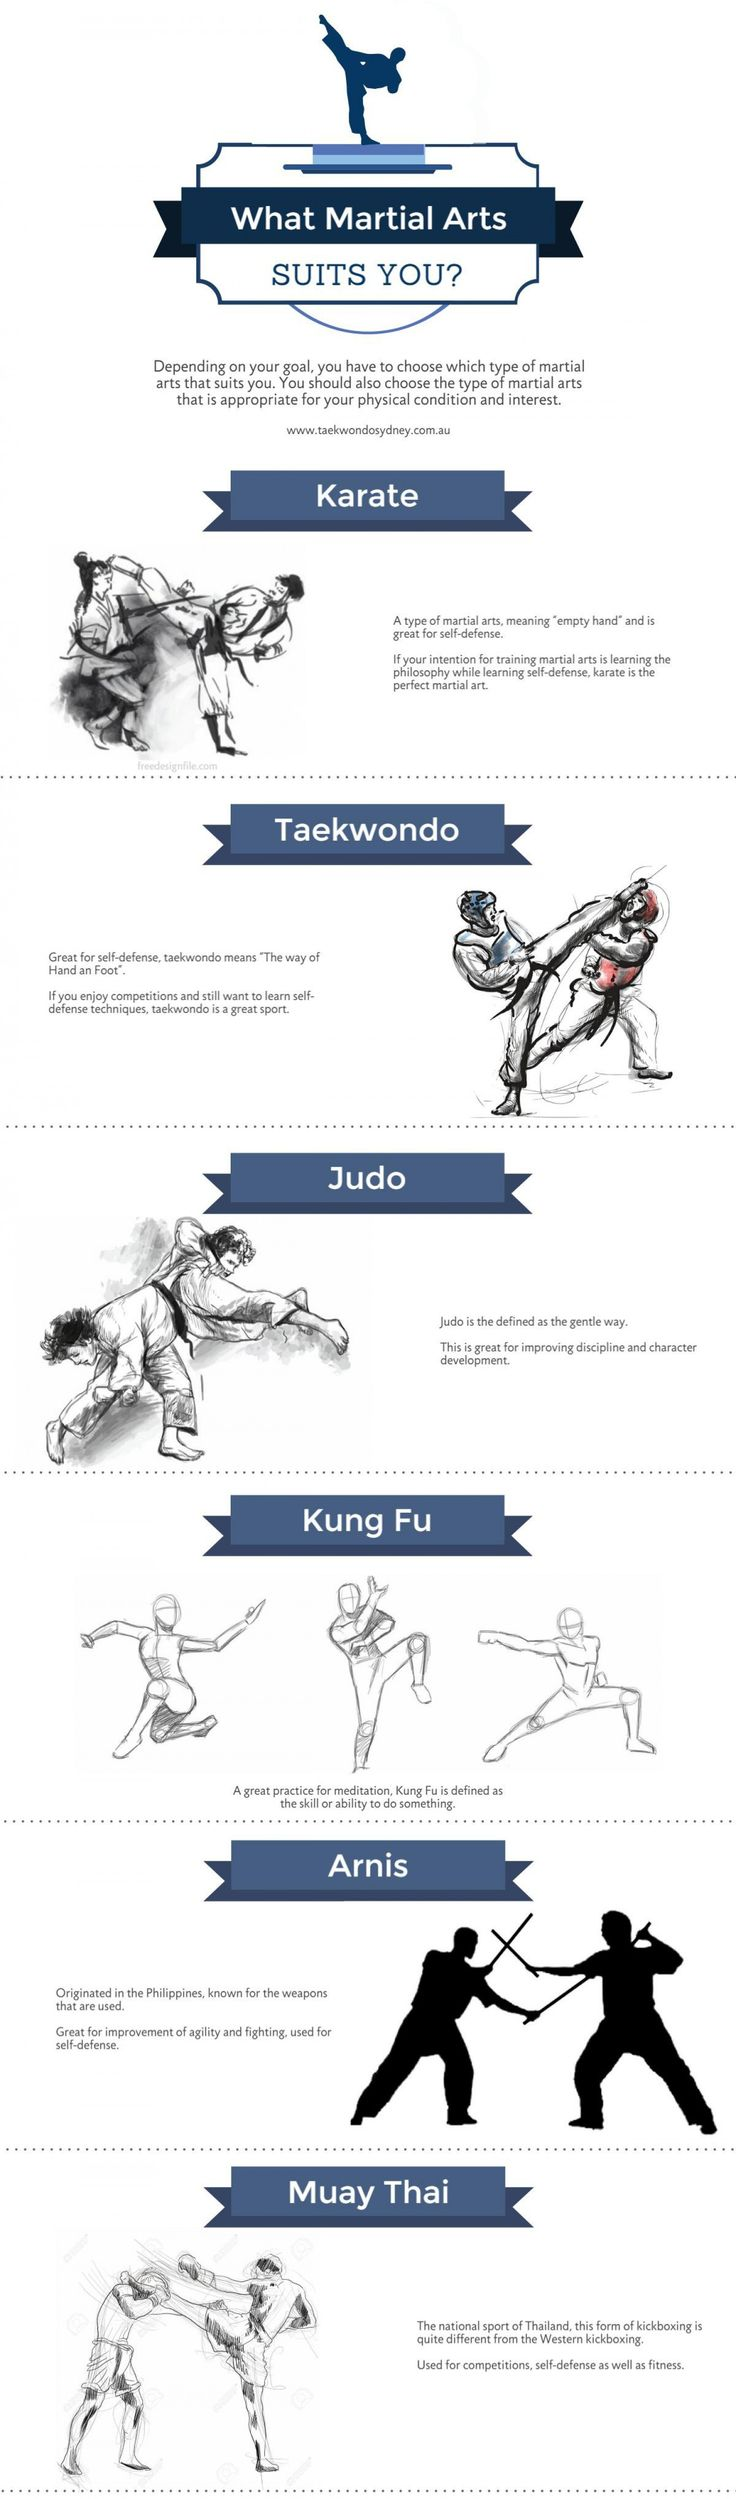 What kind of martial arts is the best? | Yahoo Answers